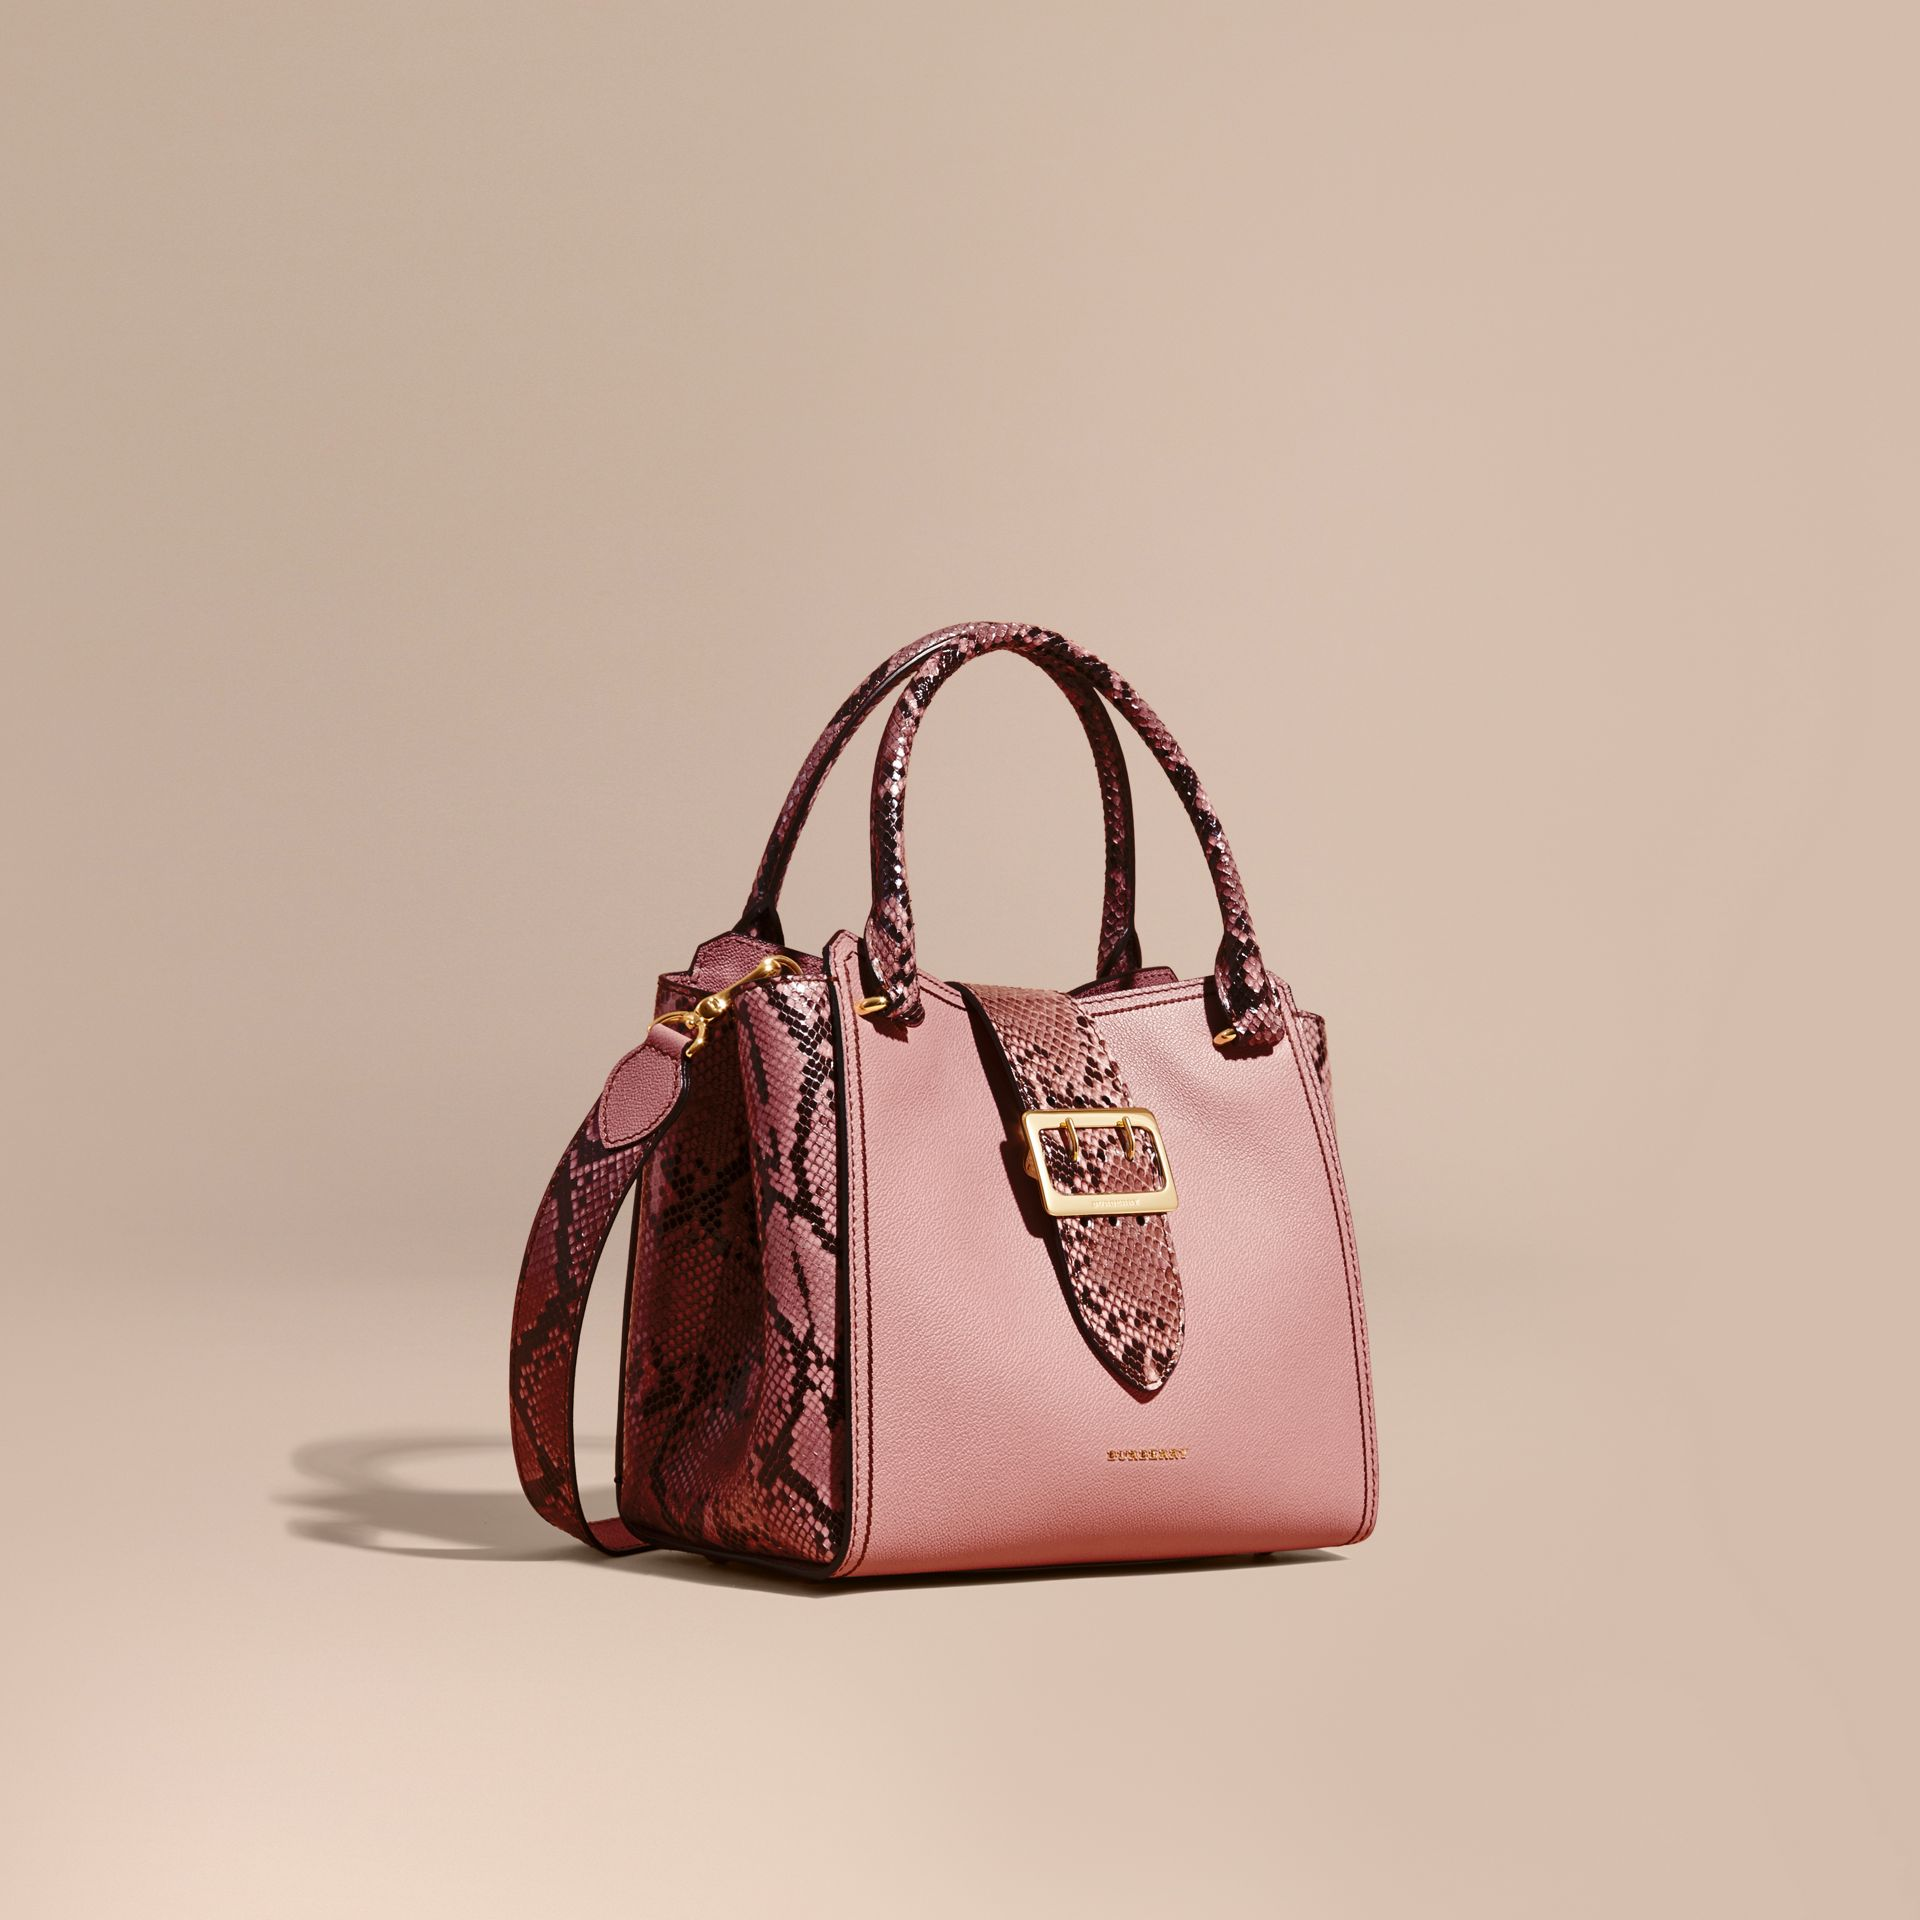 Dusty pink The Medium Buckle Tote in Grainy Leather and Python - gallery image 1